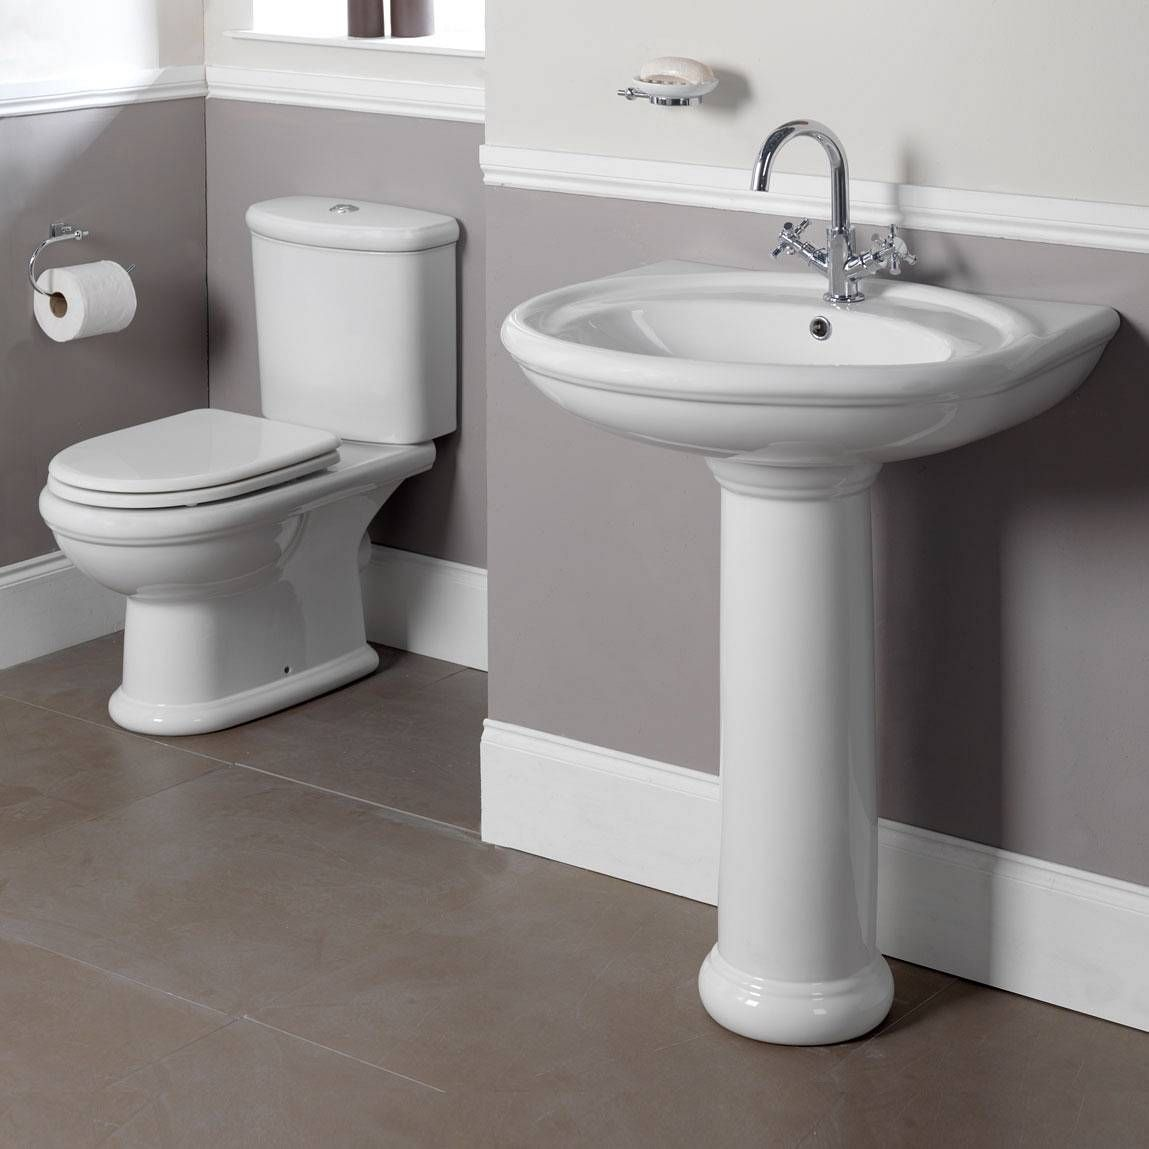 Bathroom suites warwick - Warwick Bathroom Suite Pack Now 228 Www Victoriaplumb Com